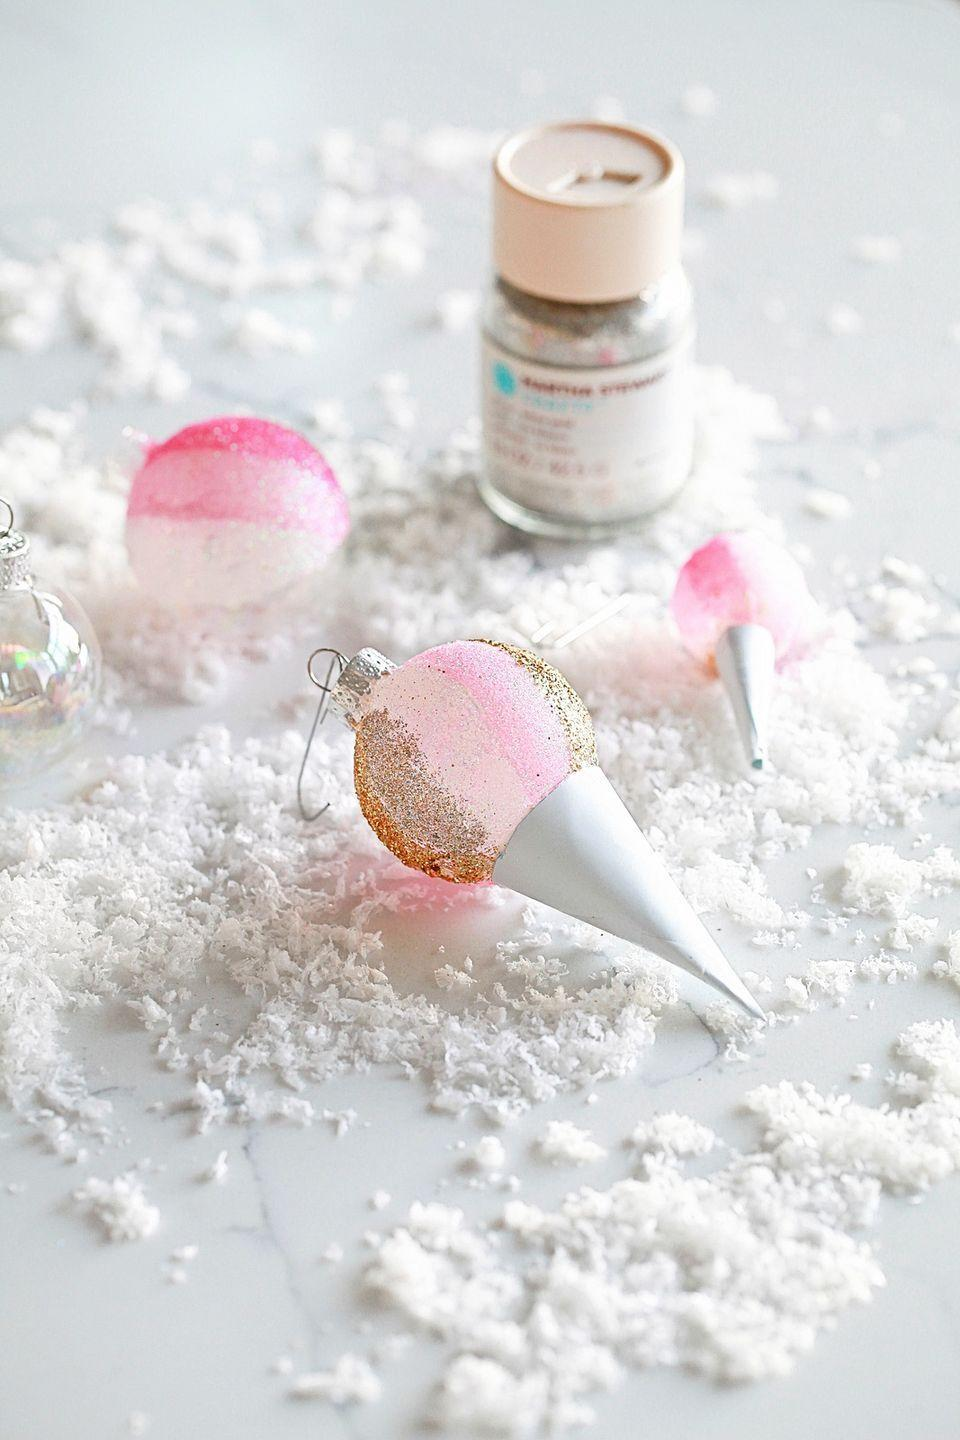 """<p>To make a super sweet DIY ornament, fashion a cone out of silver scrapbook paper, then glue it onto a glitter-covered ornament. </p><p><em>Get the tutorial at <a href=""""https://poshlittledesigns.com/2017/12/21/snow-cone-ornaments-diy/"""" rel=""""nofollow noopener"""" target=""""_blank"""" data-ylk=""""slk:Posh Little Designs"""" class=""""link rapid-noclick-resp"""">Posh Little Designs</a>. </em></p><p><a class=""""link rapid-noclick-resp"""" href=""""https://www.amazon.com/Hygloss-Products-Metallic-Board-Sheets/dp/B01MEDJR1E/?tag=syn-yahoo-20&ascsubtag=%5Bartid%7C10072.g.34443405%5Bsrc%7Cyahoo-us"""" rel=""""nofollow noopener"""" target=""""_blank"""" data-ylk=""""slk:SHOP SILVER PAPER"""">SHOP SILVER PAPER</a></p>"""